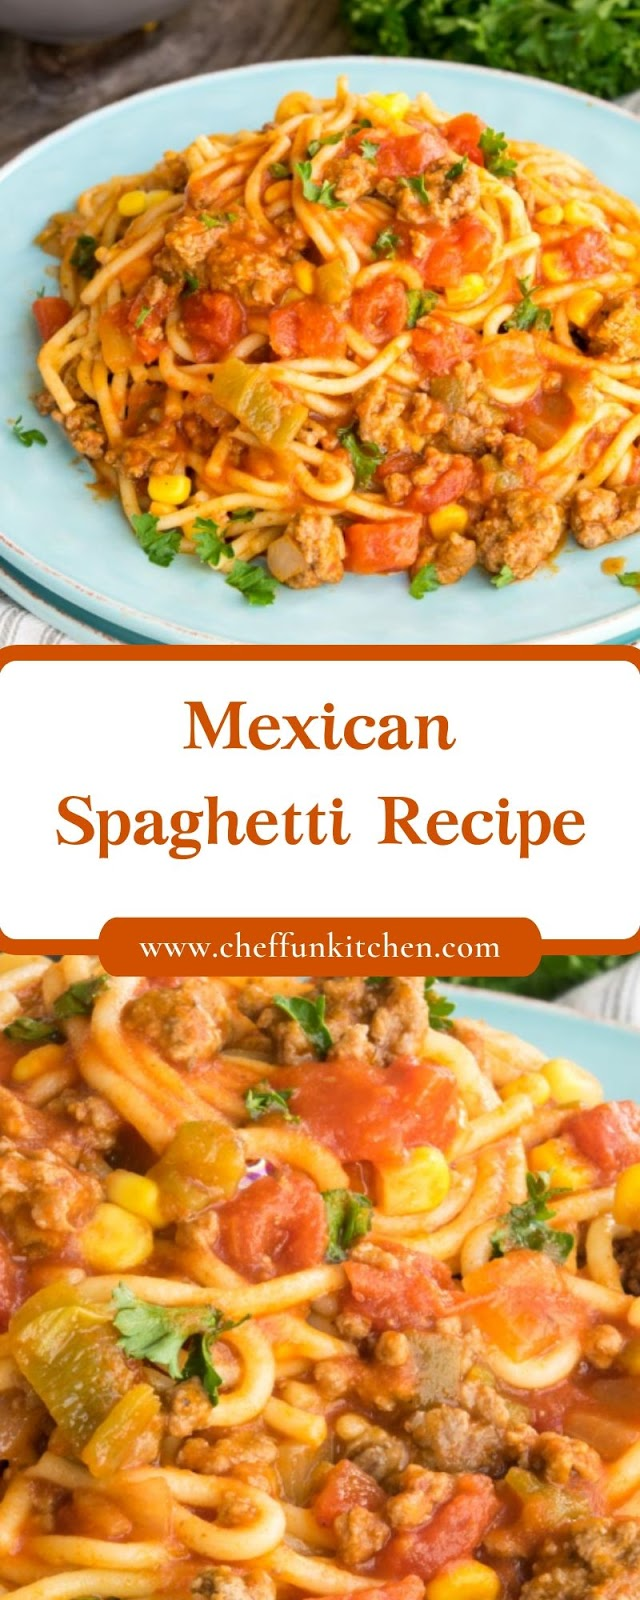 Mexican Spaghetti Recipe